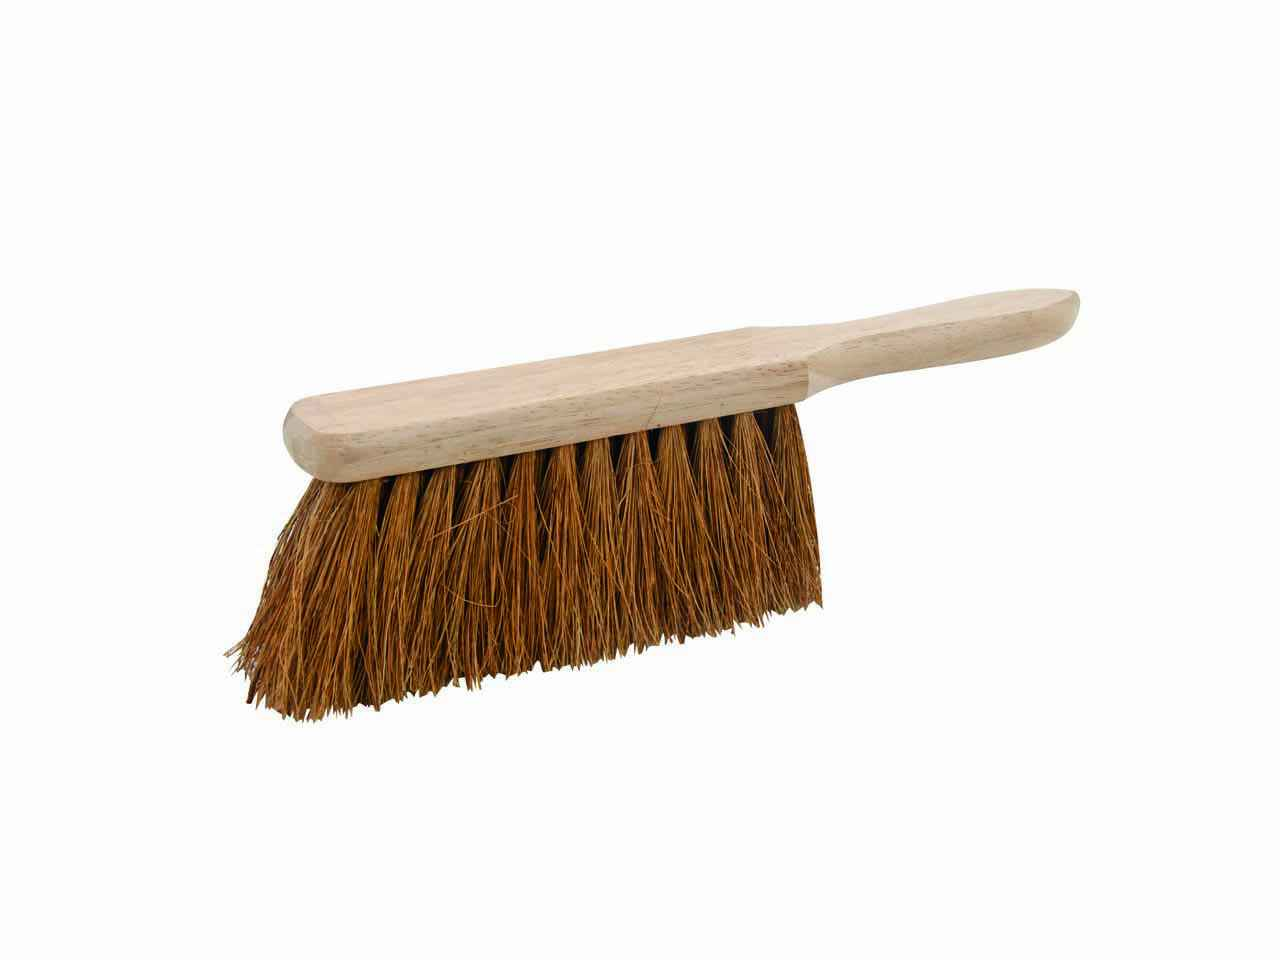 Outdoor Use Silverline 277870 Soft Coco Hand Brush Rubberwood Handle for Indoor